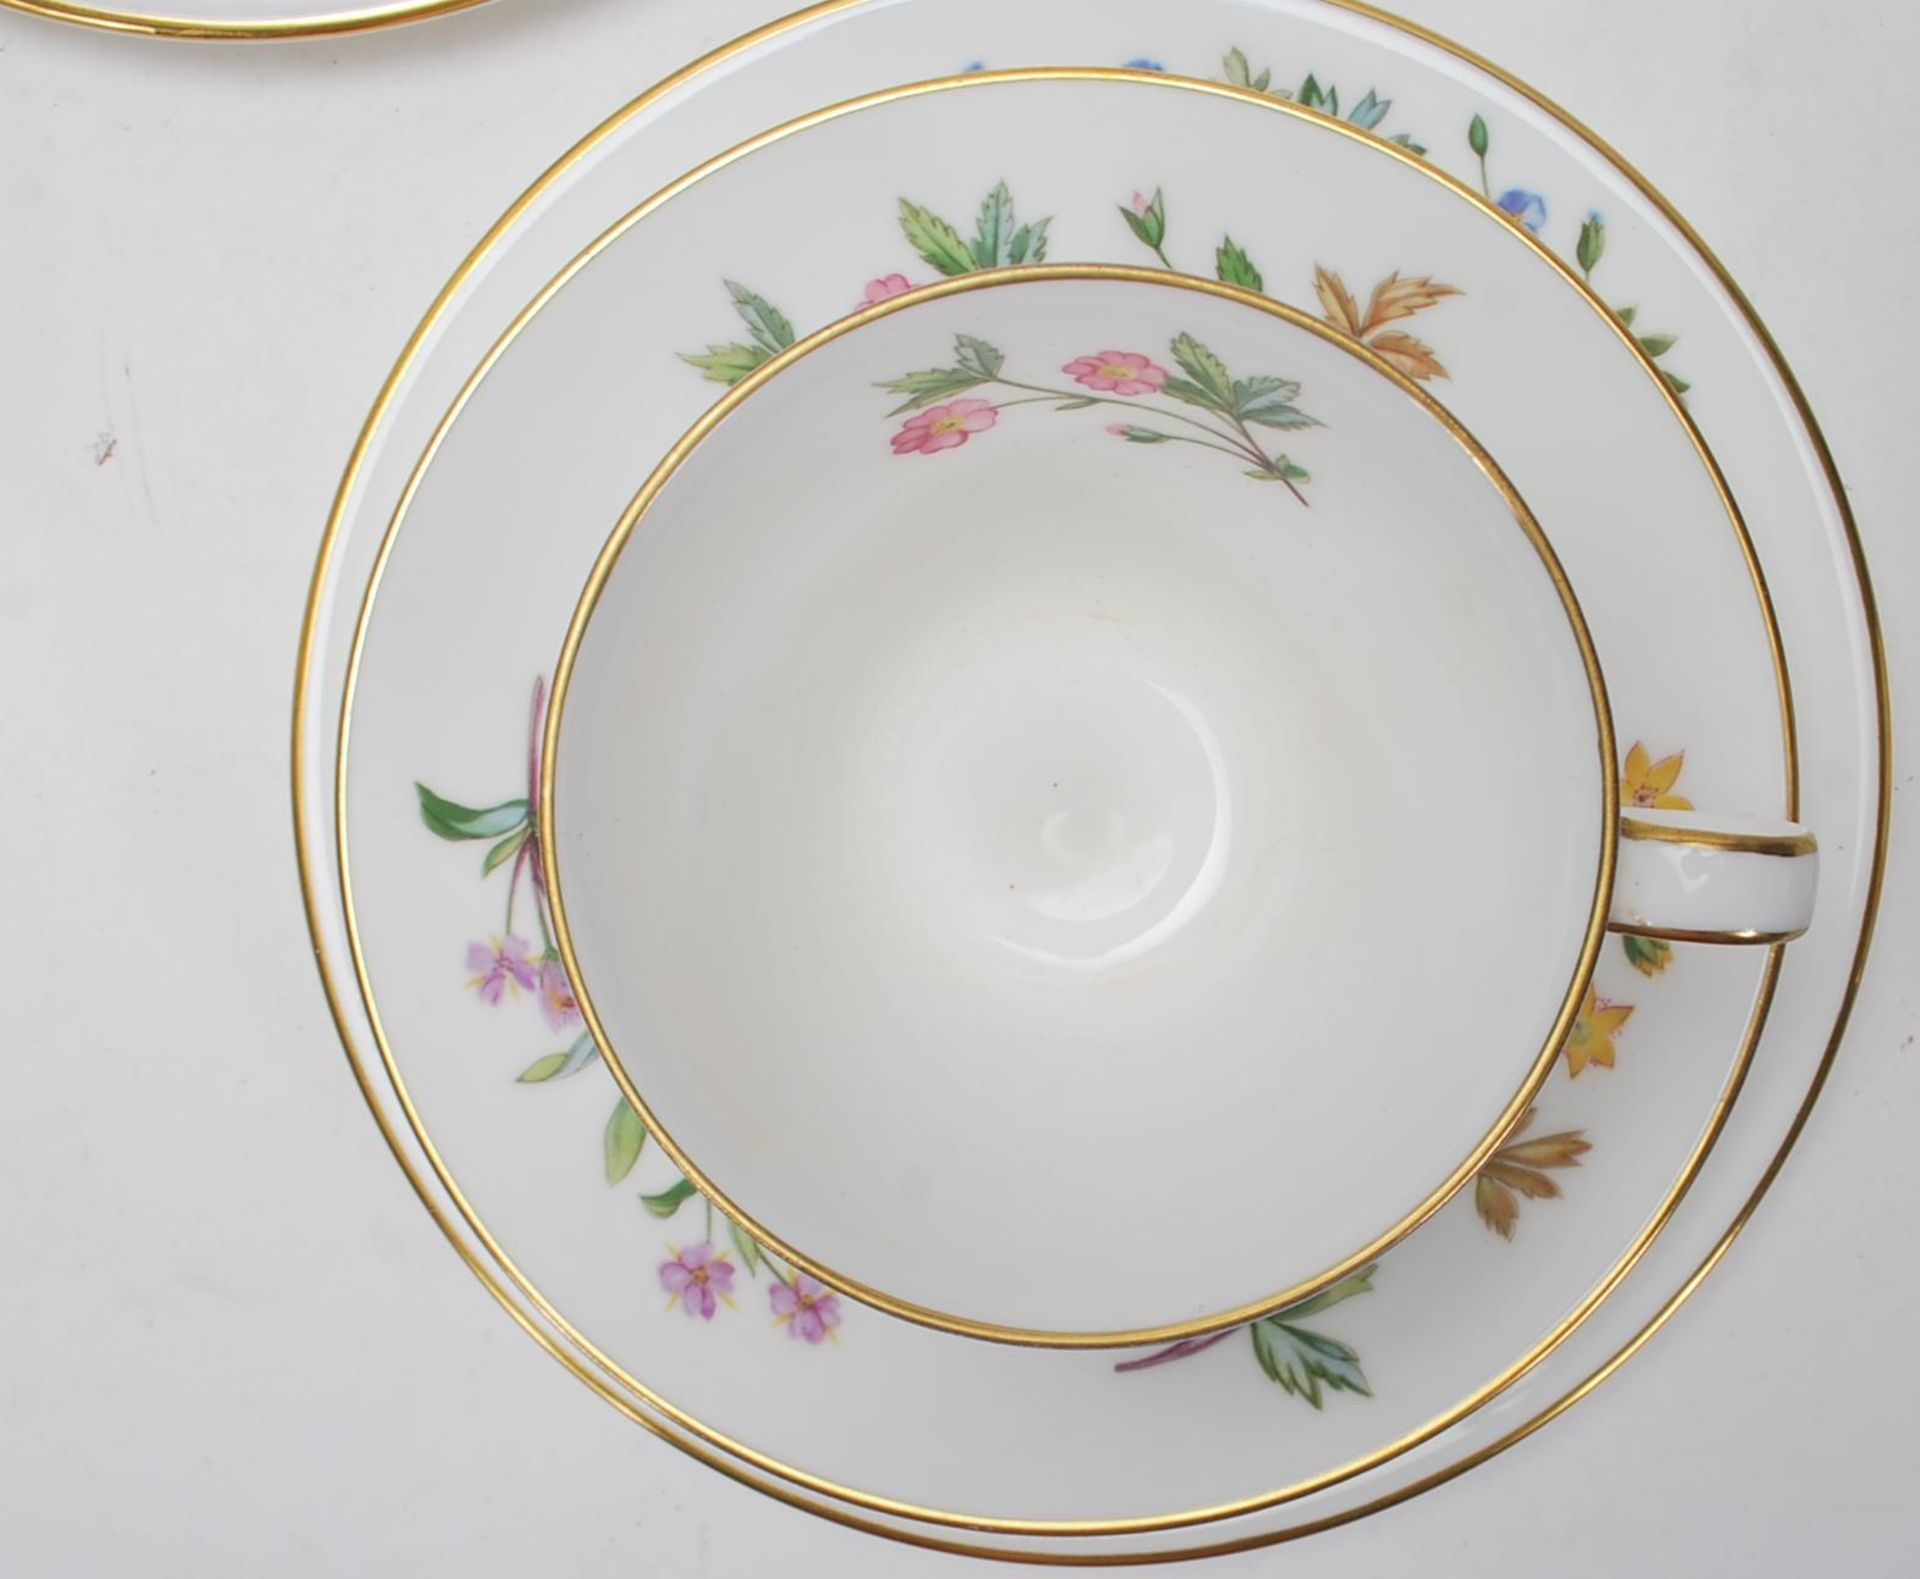 MINTON MEADOW PATTERN BONE CHINA TEA SERVICE - Image 4 of 12